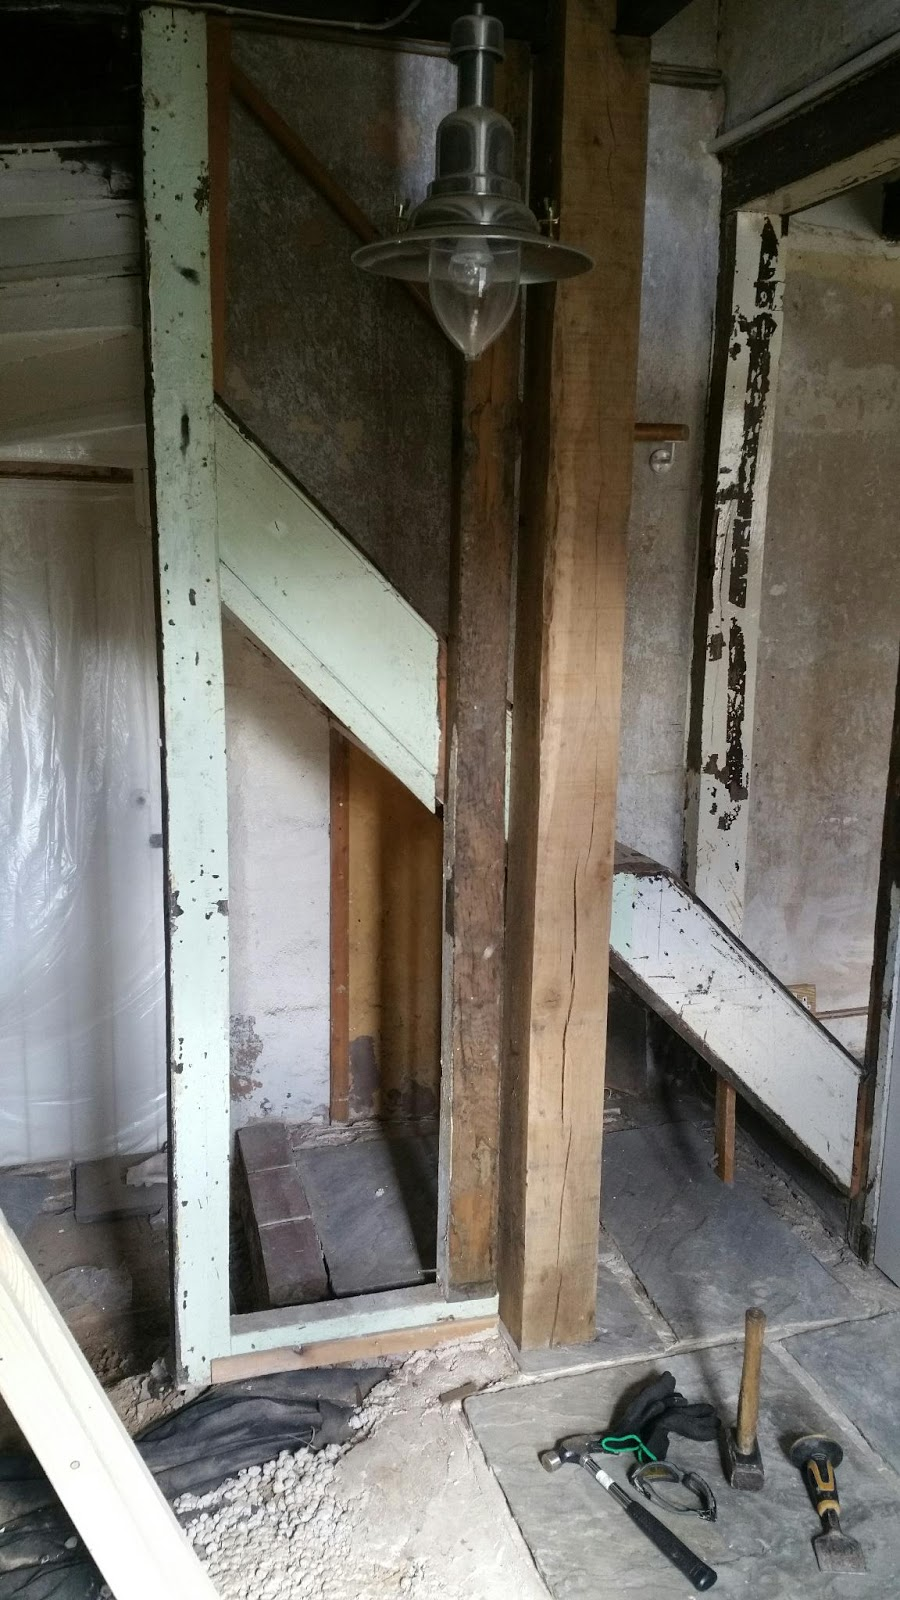 It Took Surprisingly Little Effort To Remove The Old Stairs. They Were  Fragile And Built In Sections, So They Came Apart With A Light Hammering  And Were ...